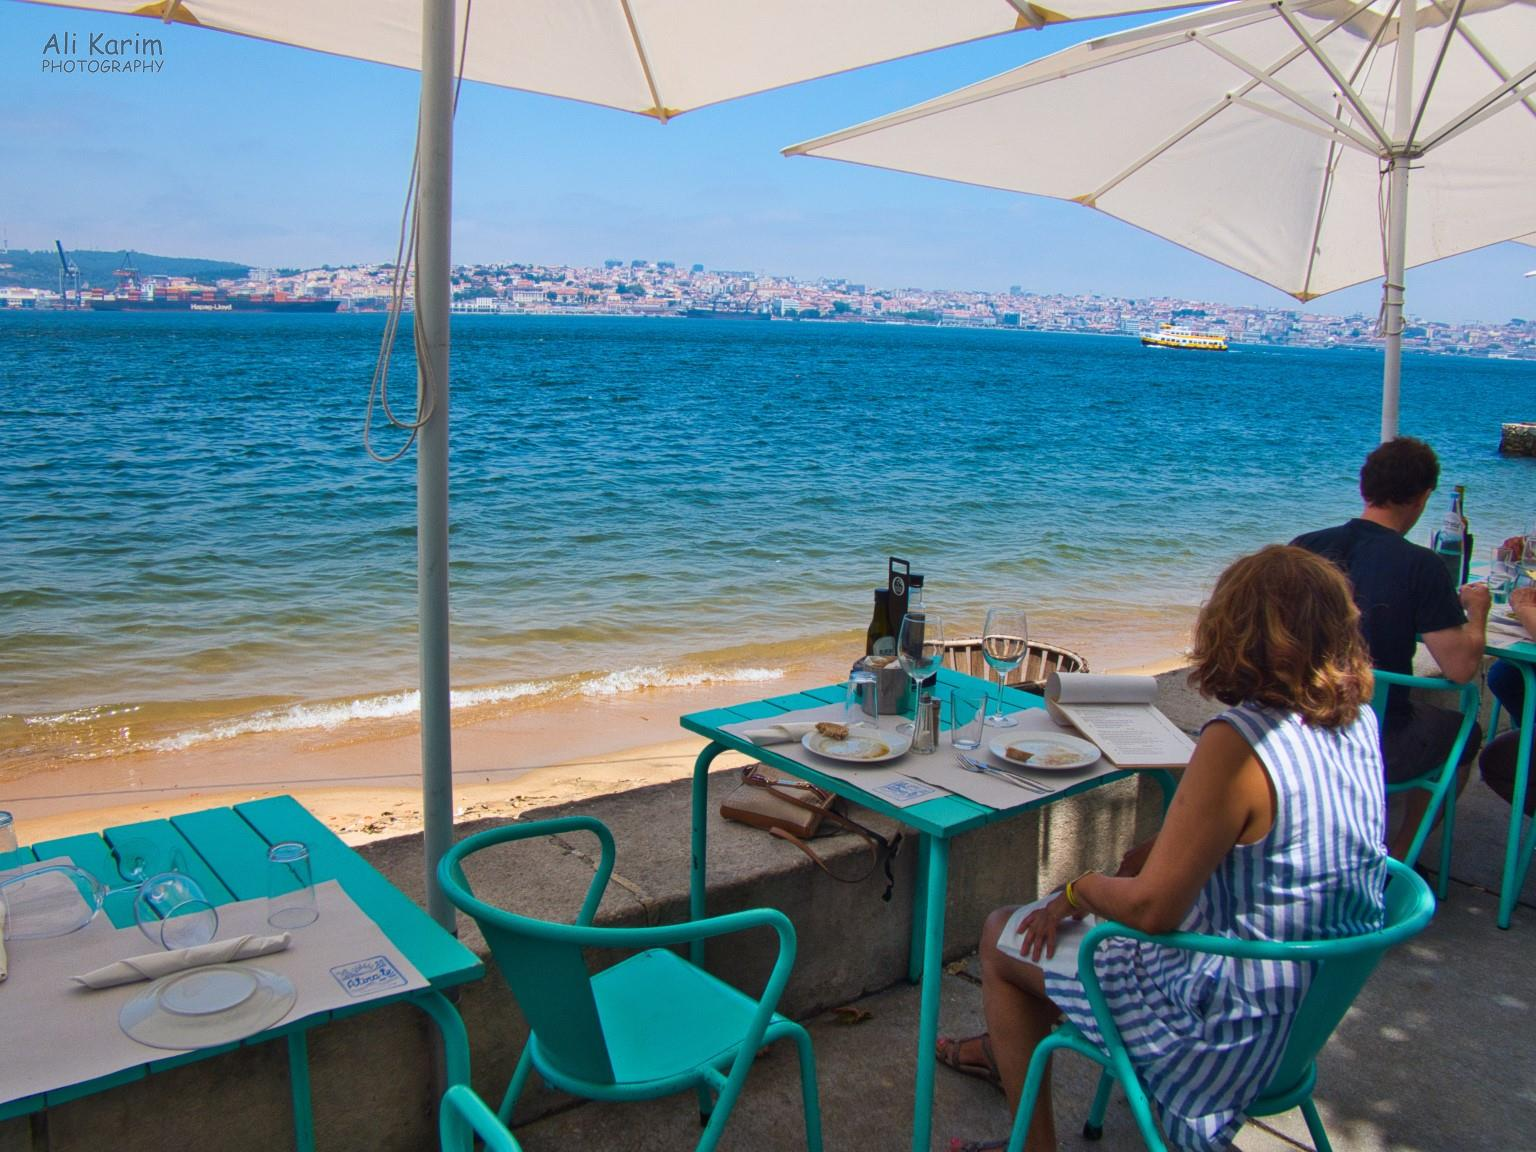 Waterfront dining at the Atira-te ao rio restaurant, views of ships and Lisbon